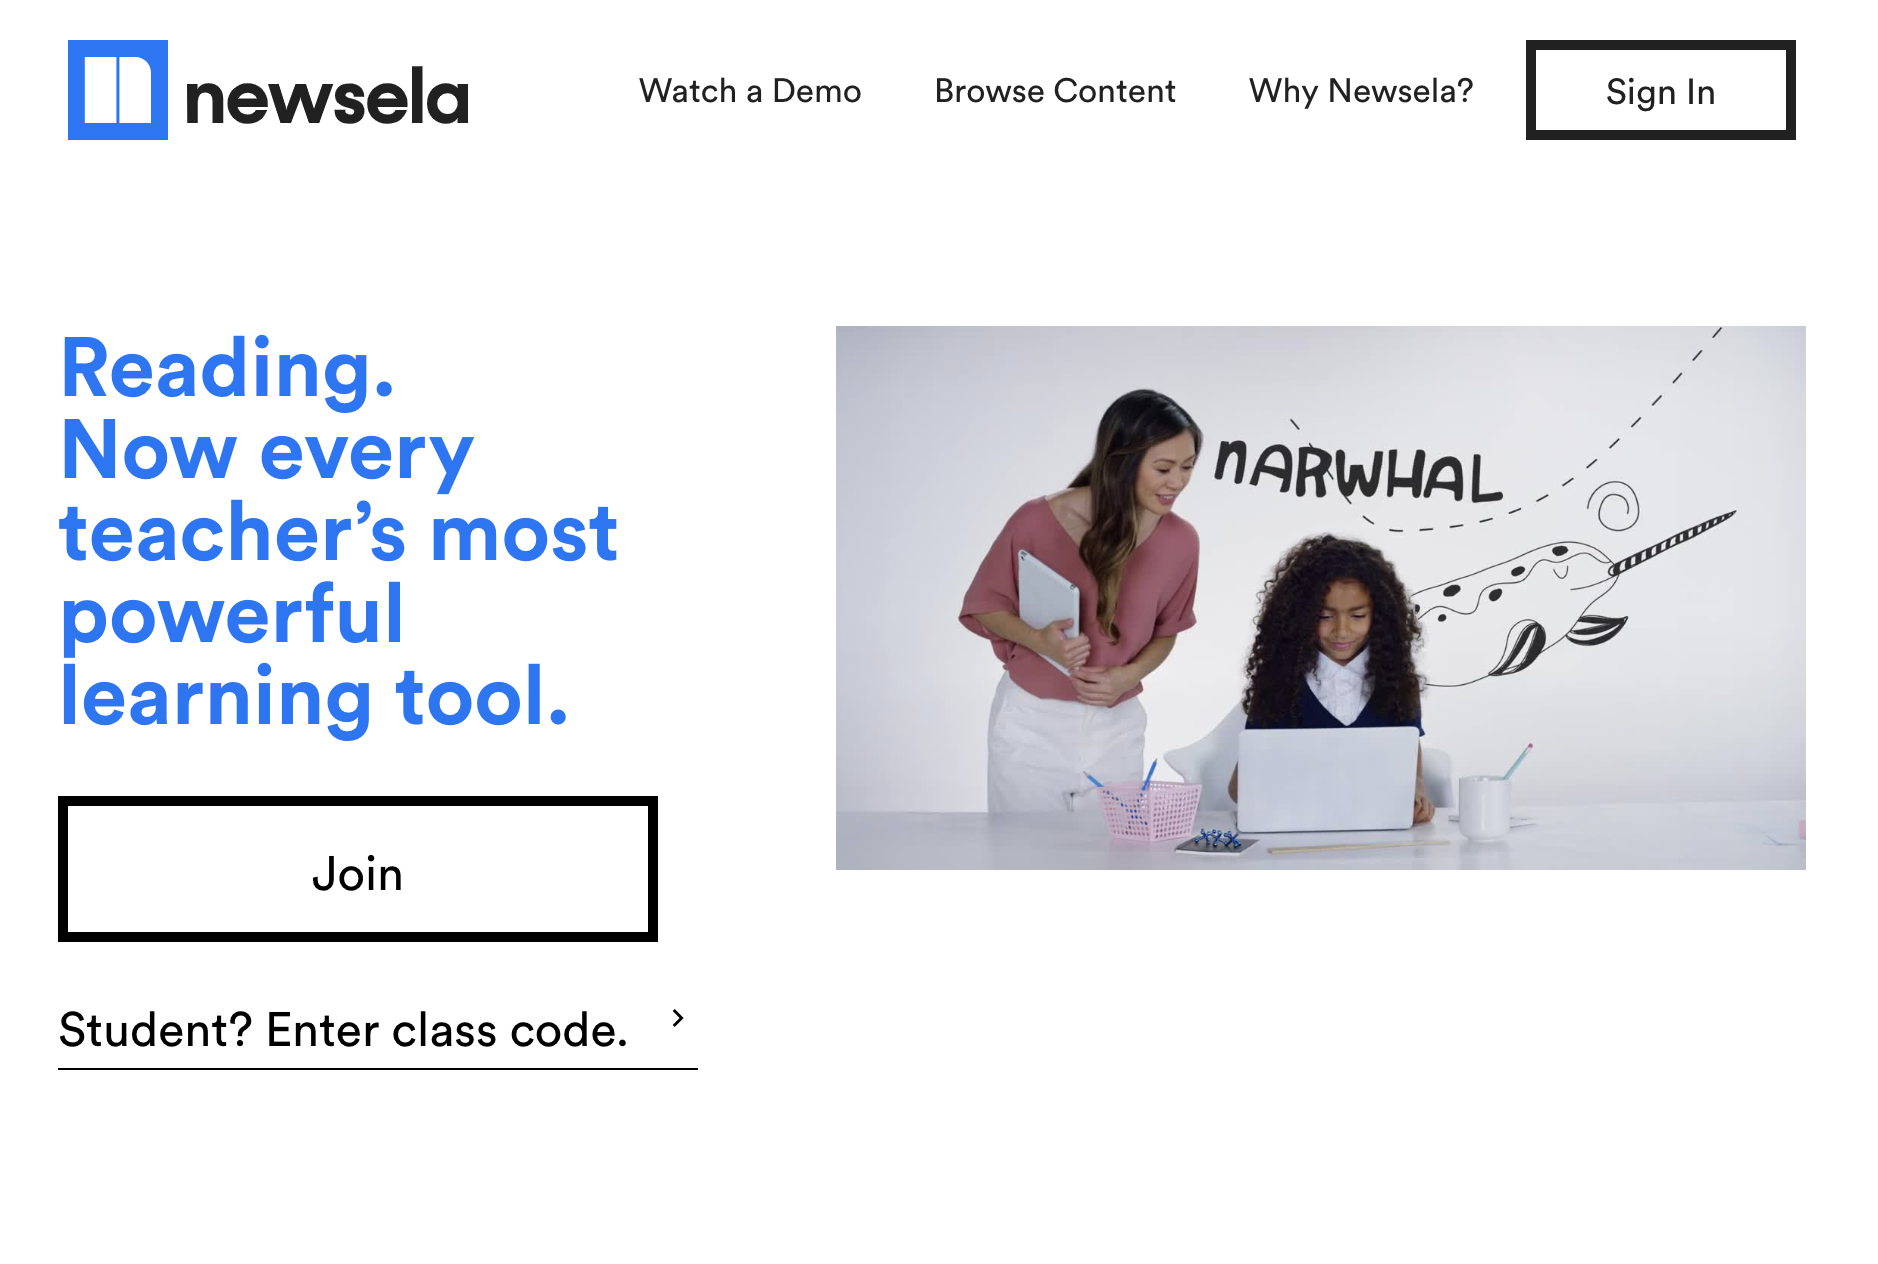 Newsela - As a news junkie, this platform has been transformative for bringing news to students. I love the tiered versions of articles for different reading levels, as well as the social nature of teachers compiling binders that link similar stories. For middle grades, this is a more important tool than any other news subscription.